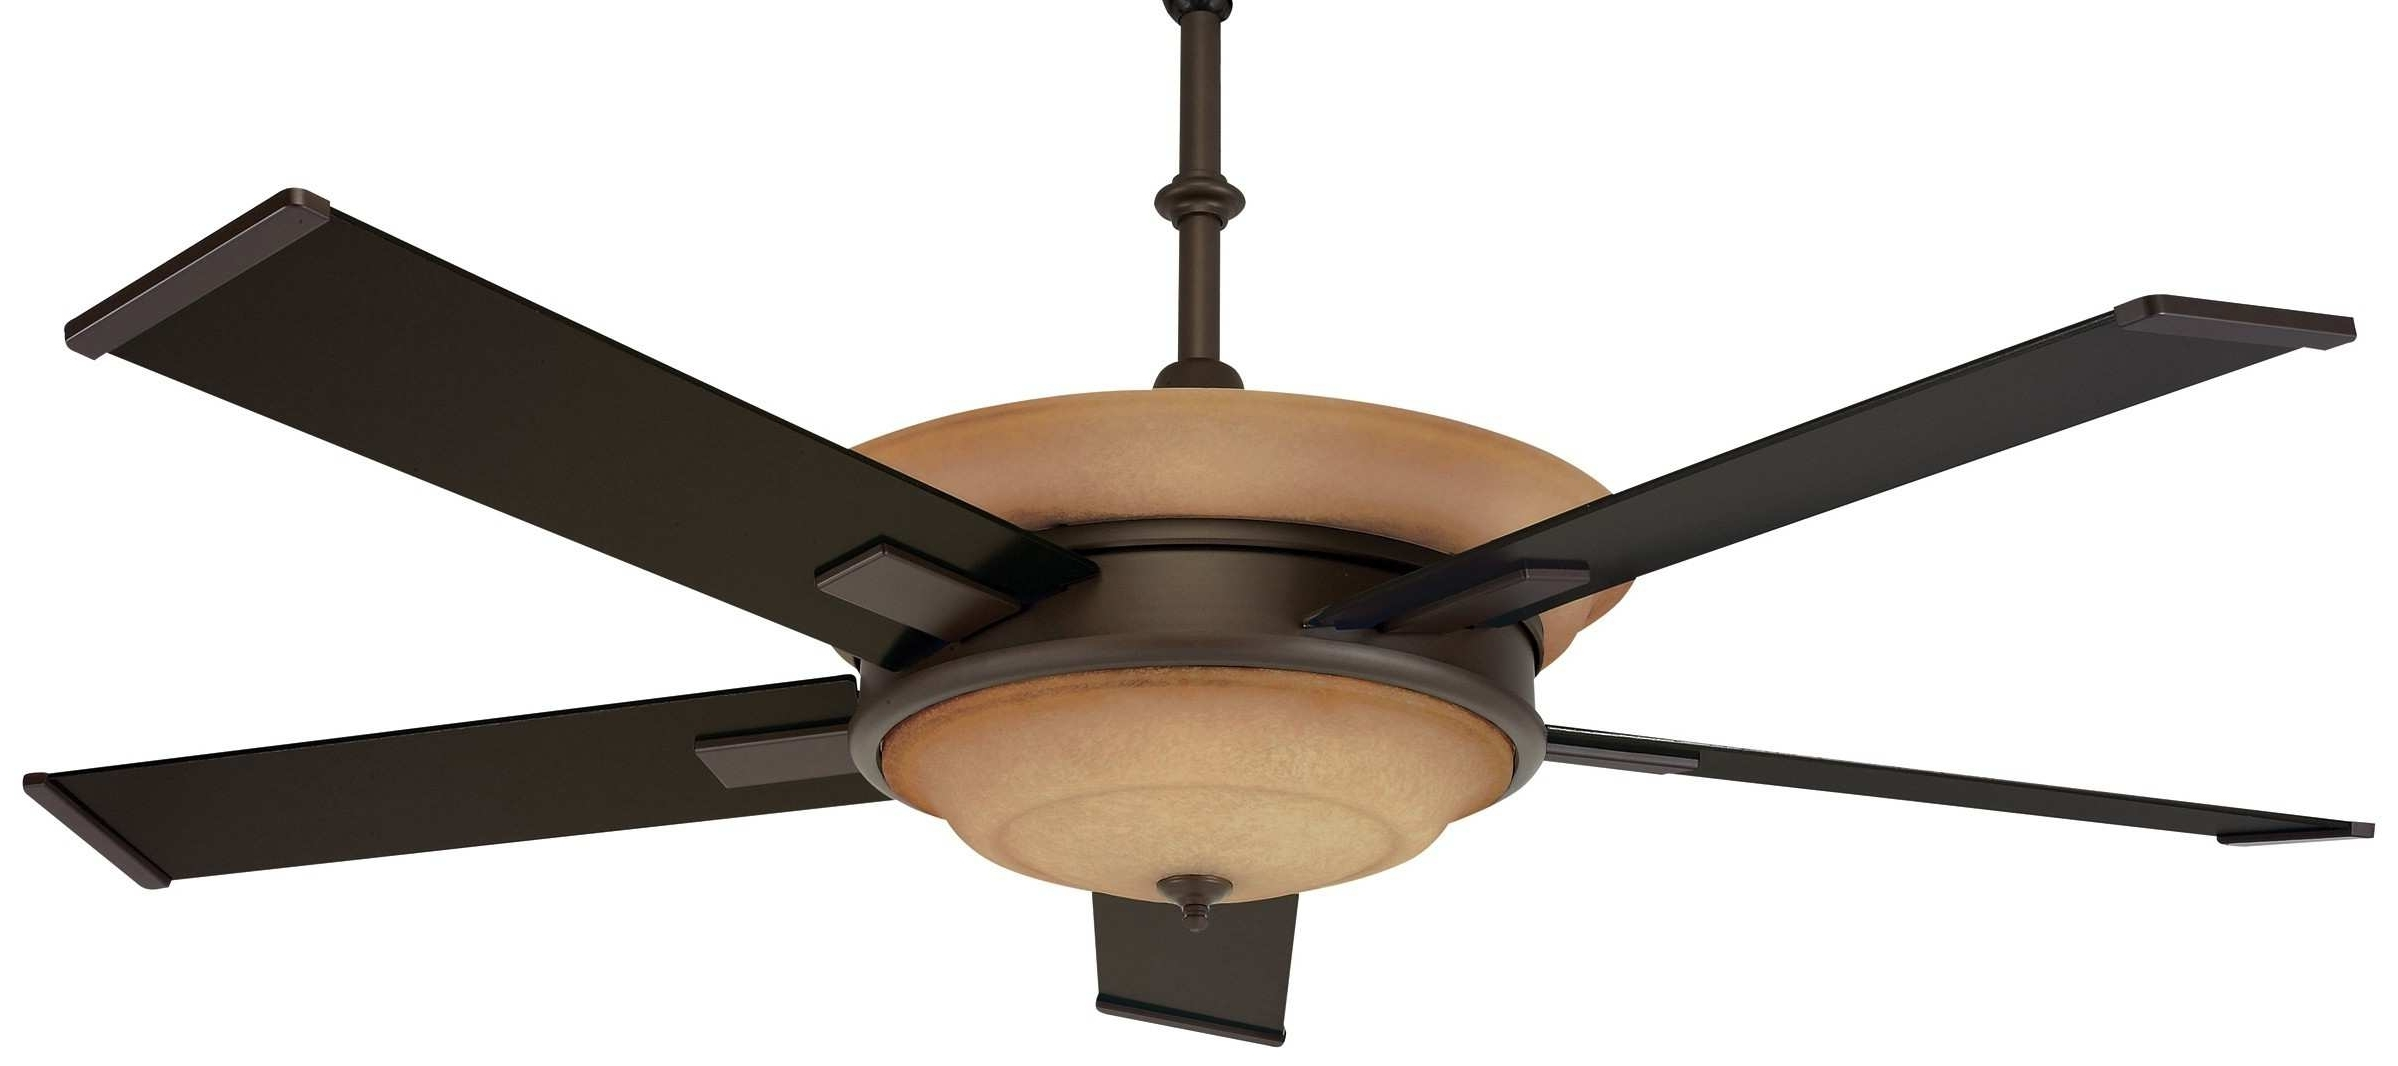 Outdoor Ceiling Fans With Uplights Regarding Well Known Ceiling Fan With Uplight And Downlight Beautiful Outdoor Concord (View 6 of 20)